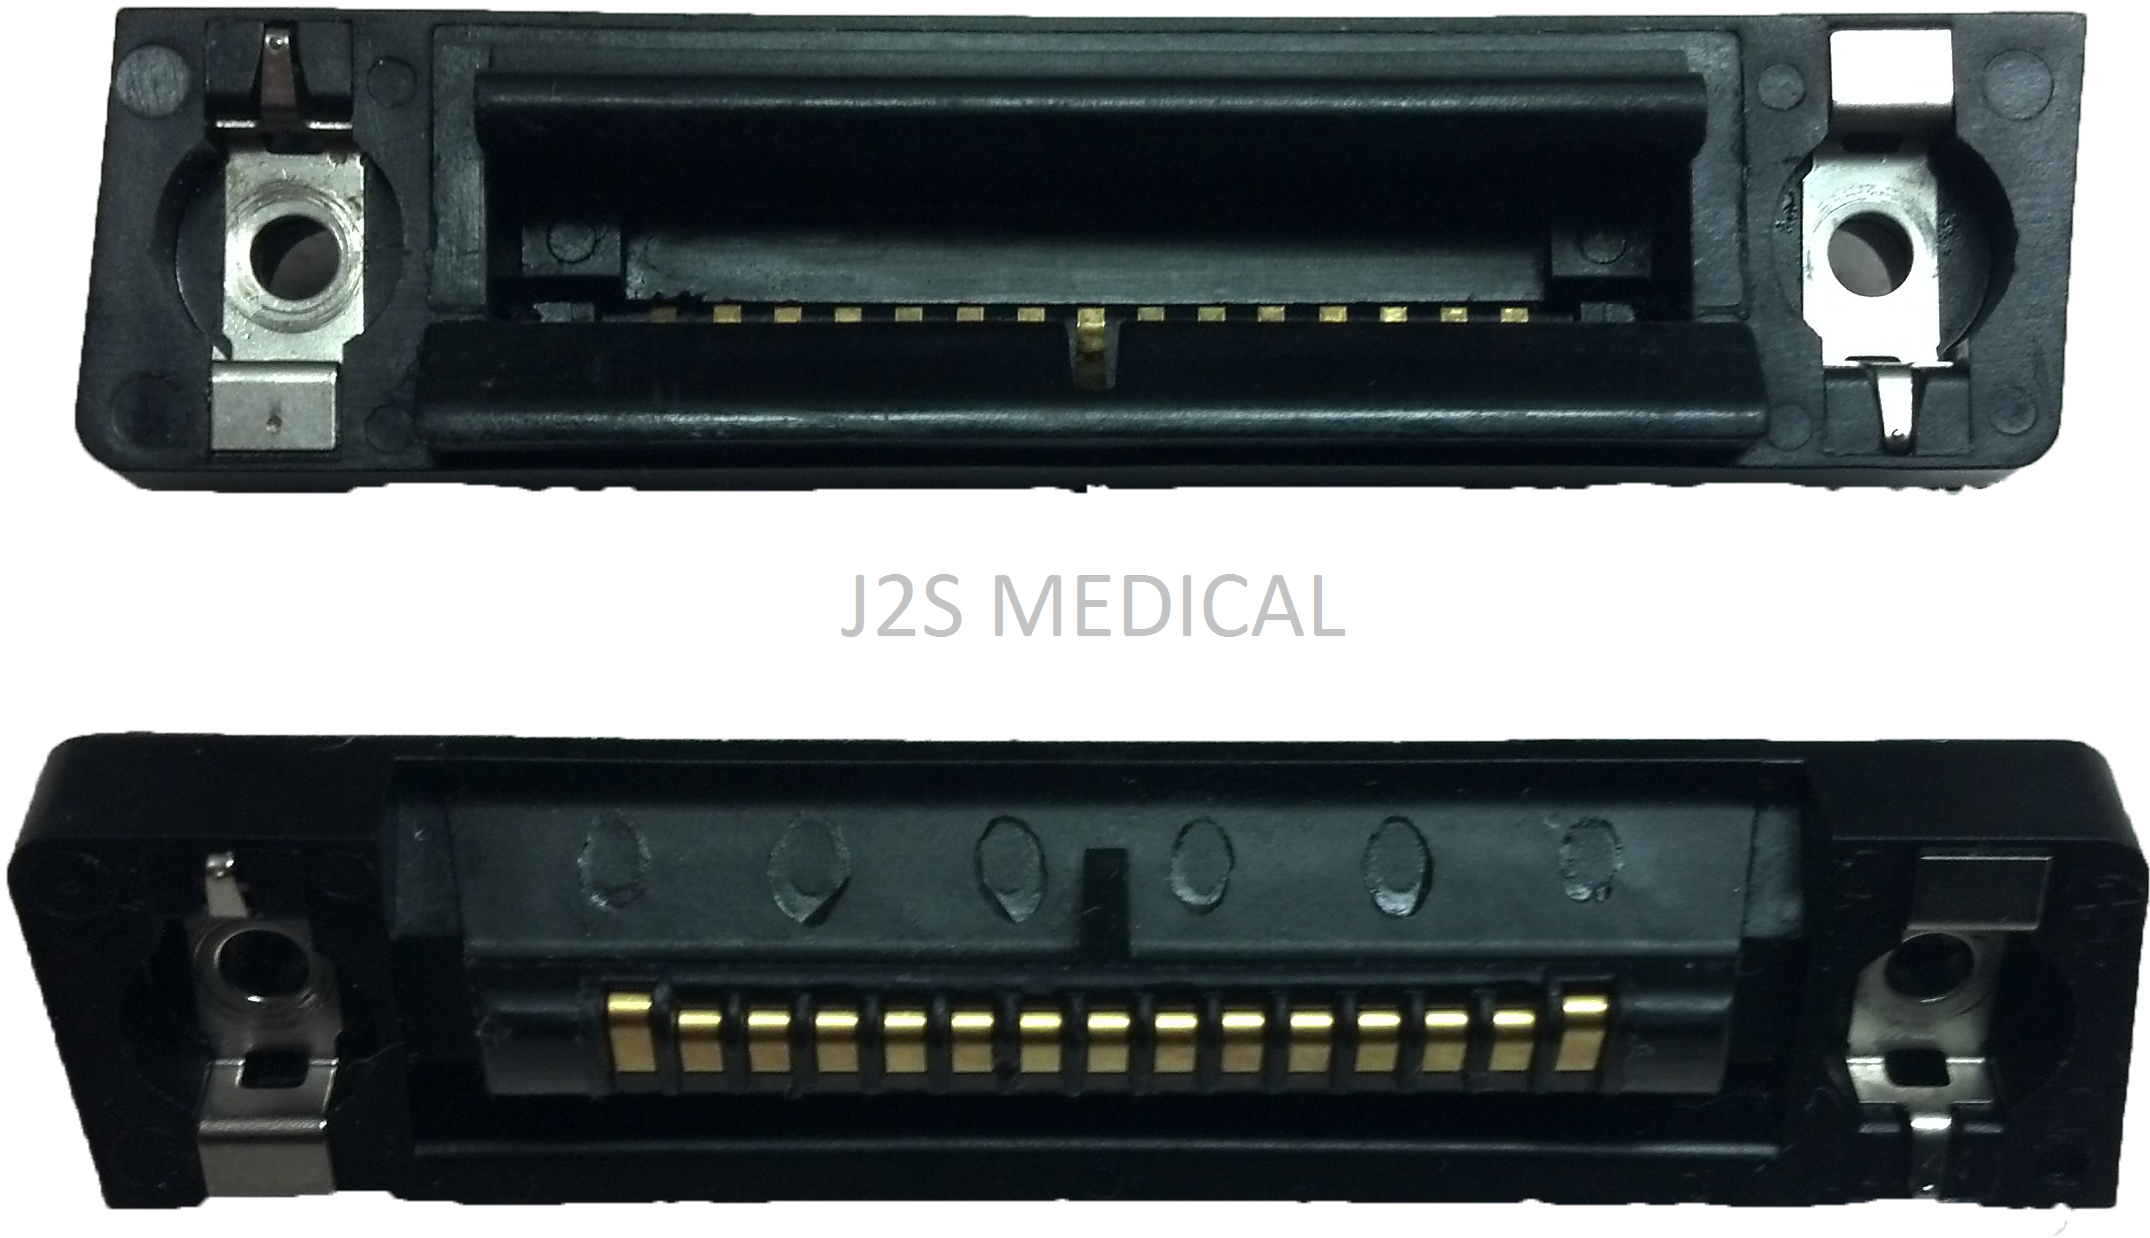 Recertified IUI Connectors For Carefusion Medley 8000/8015 Image